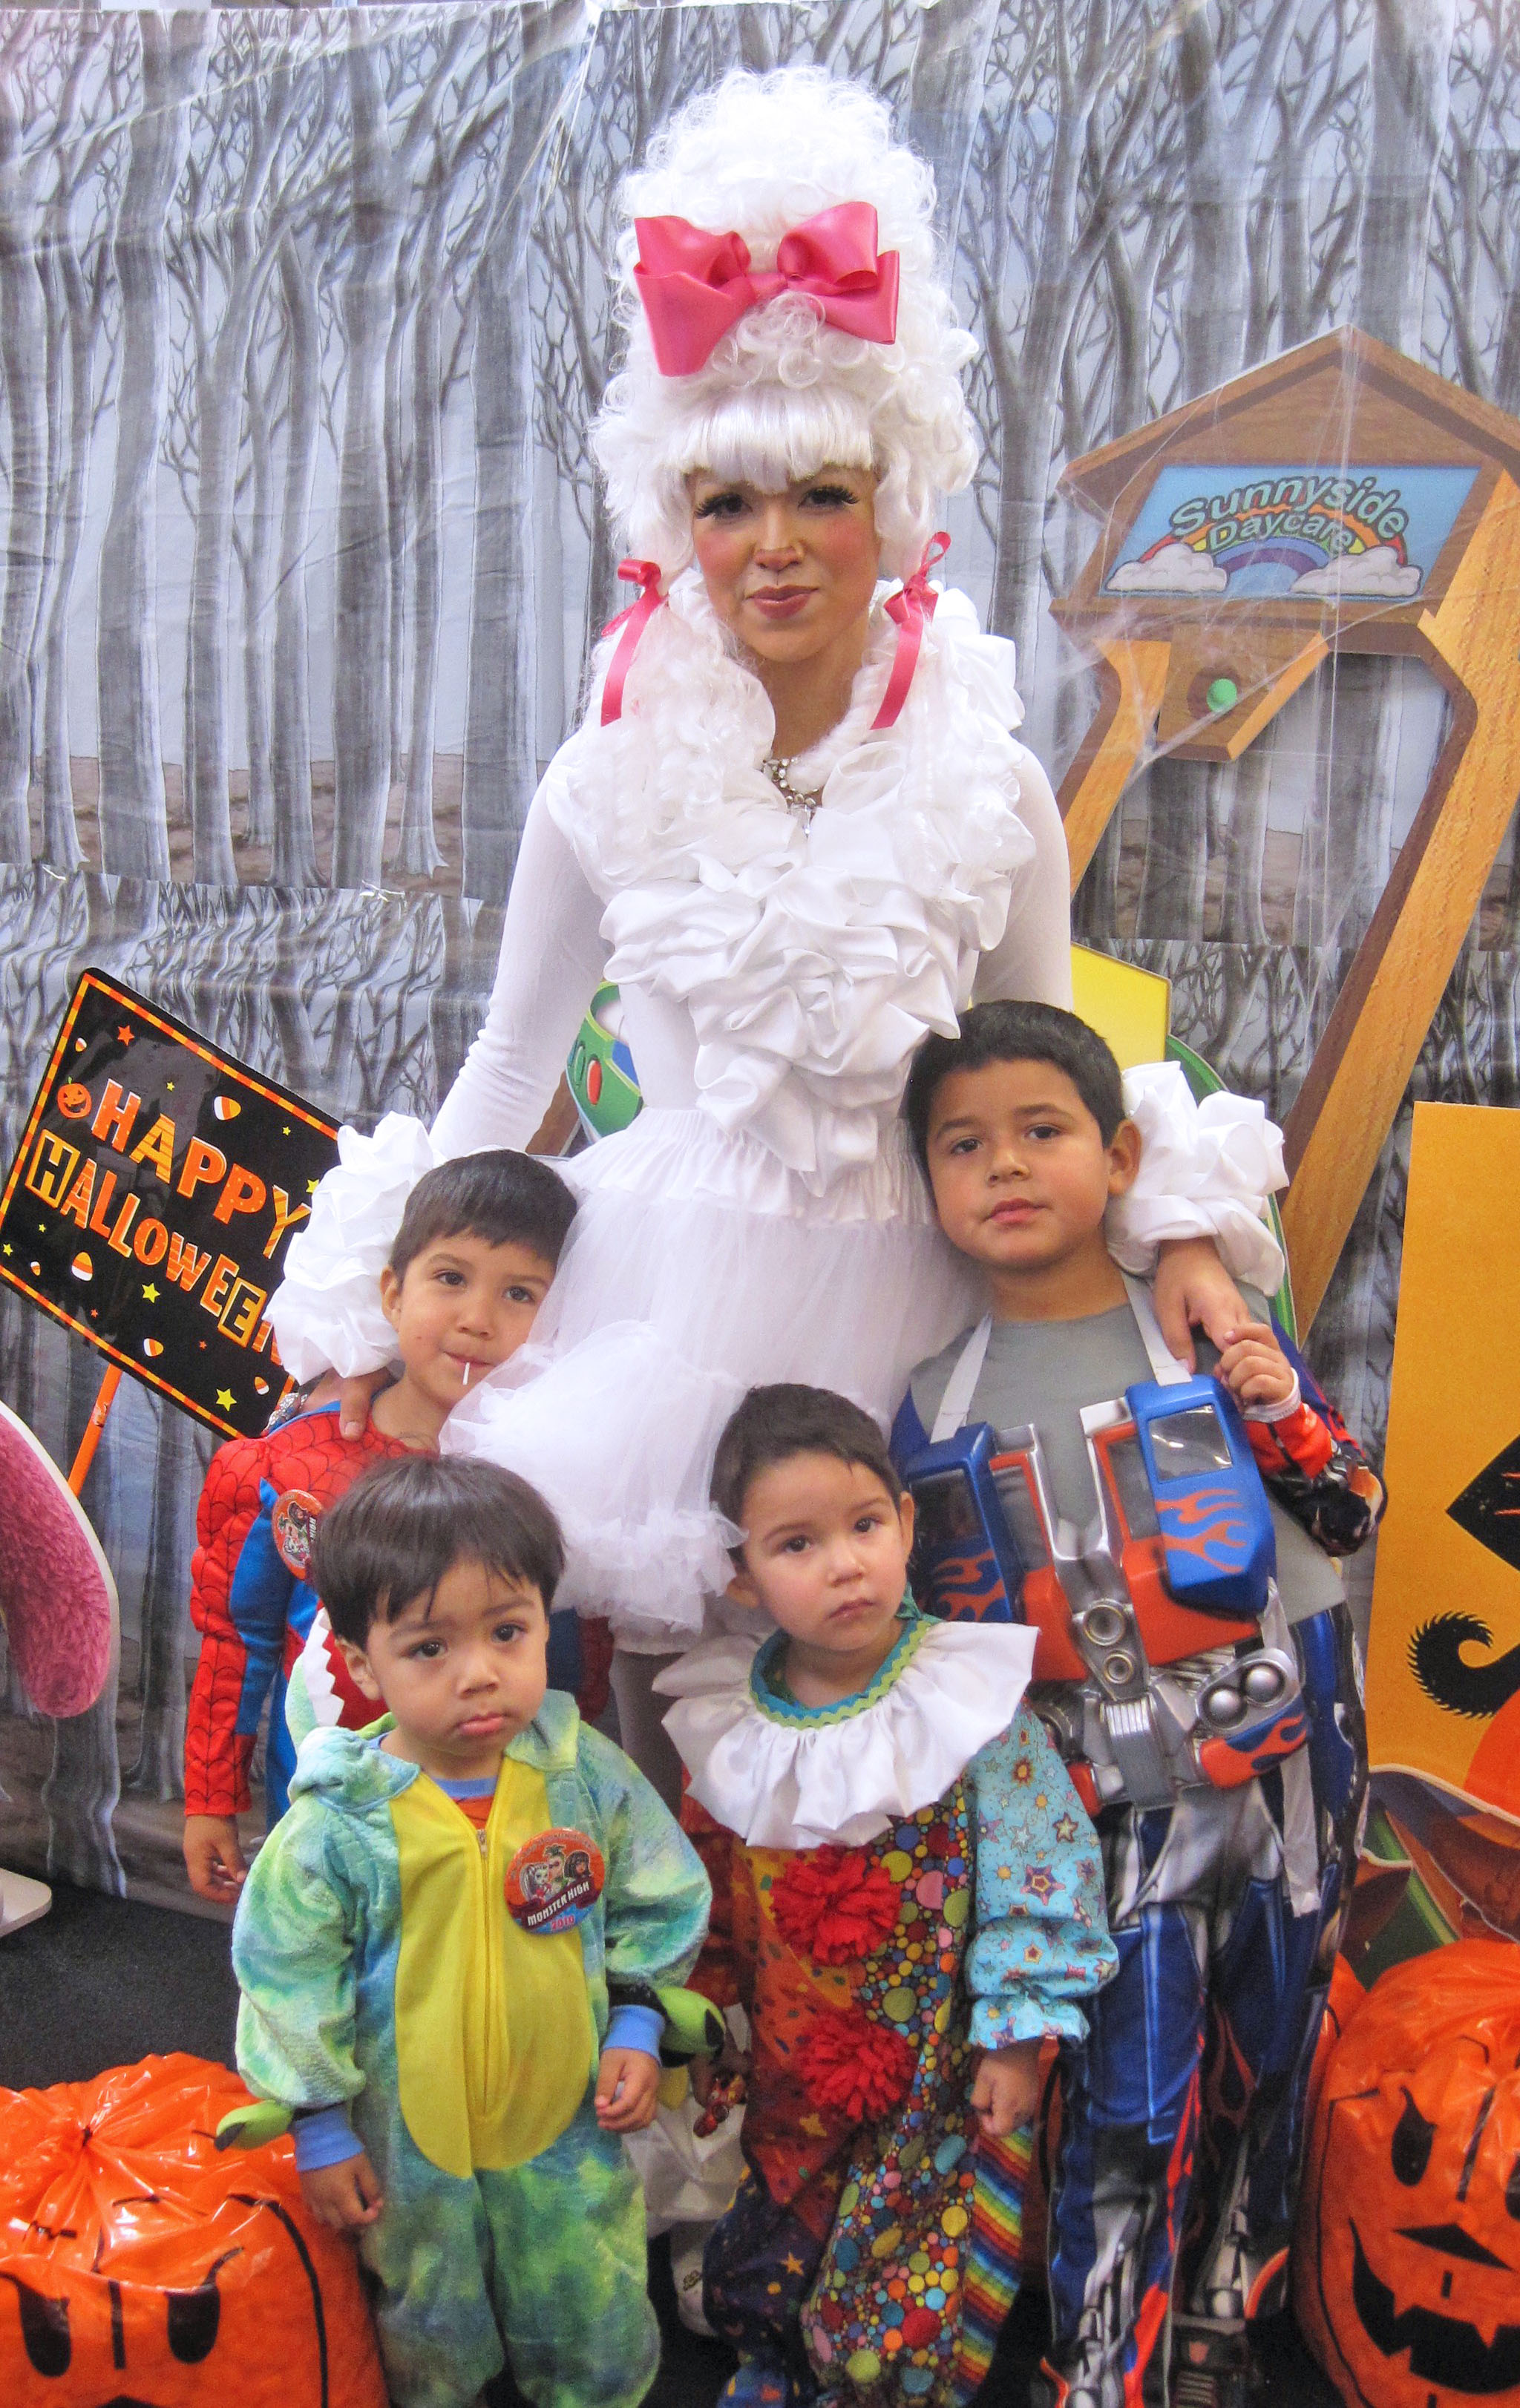 Poddle costume and kids